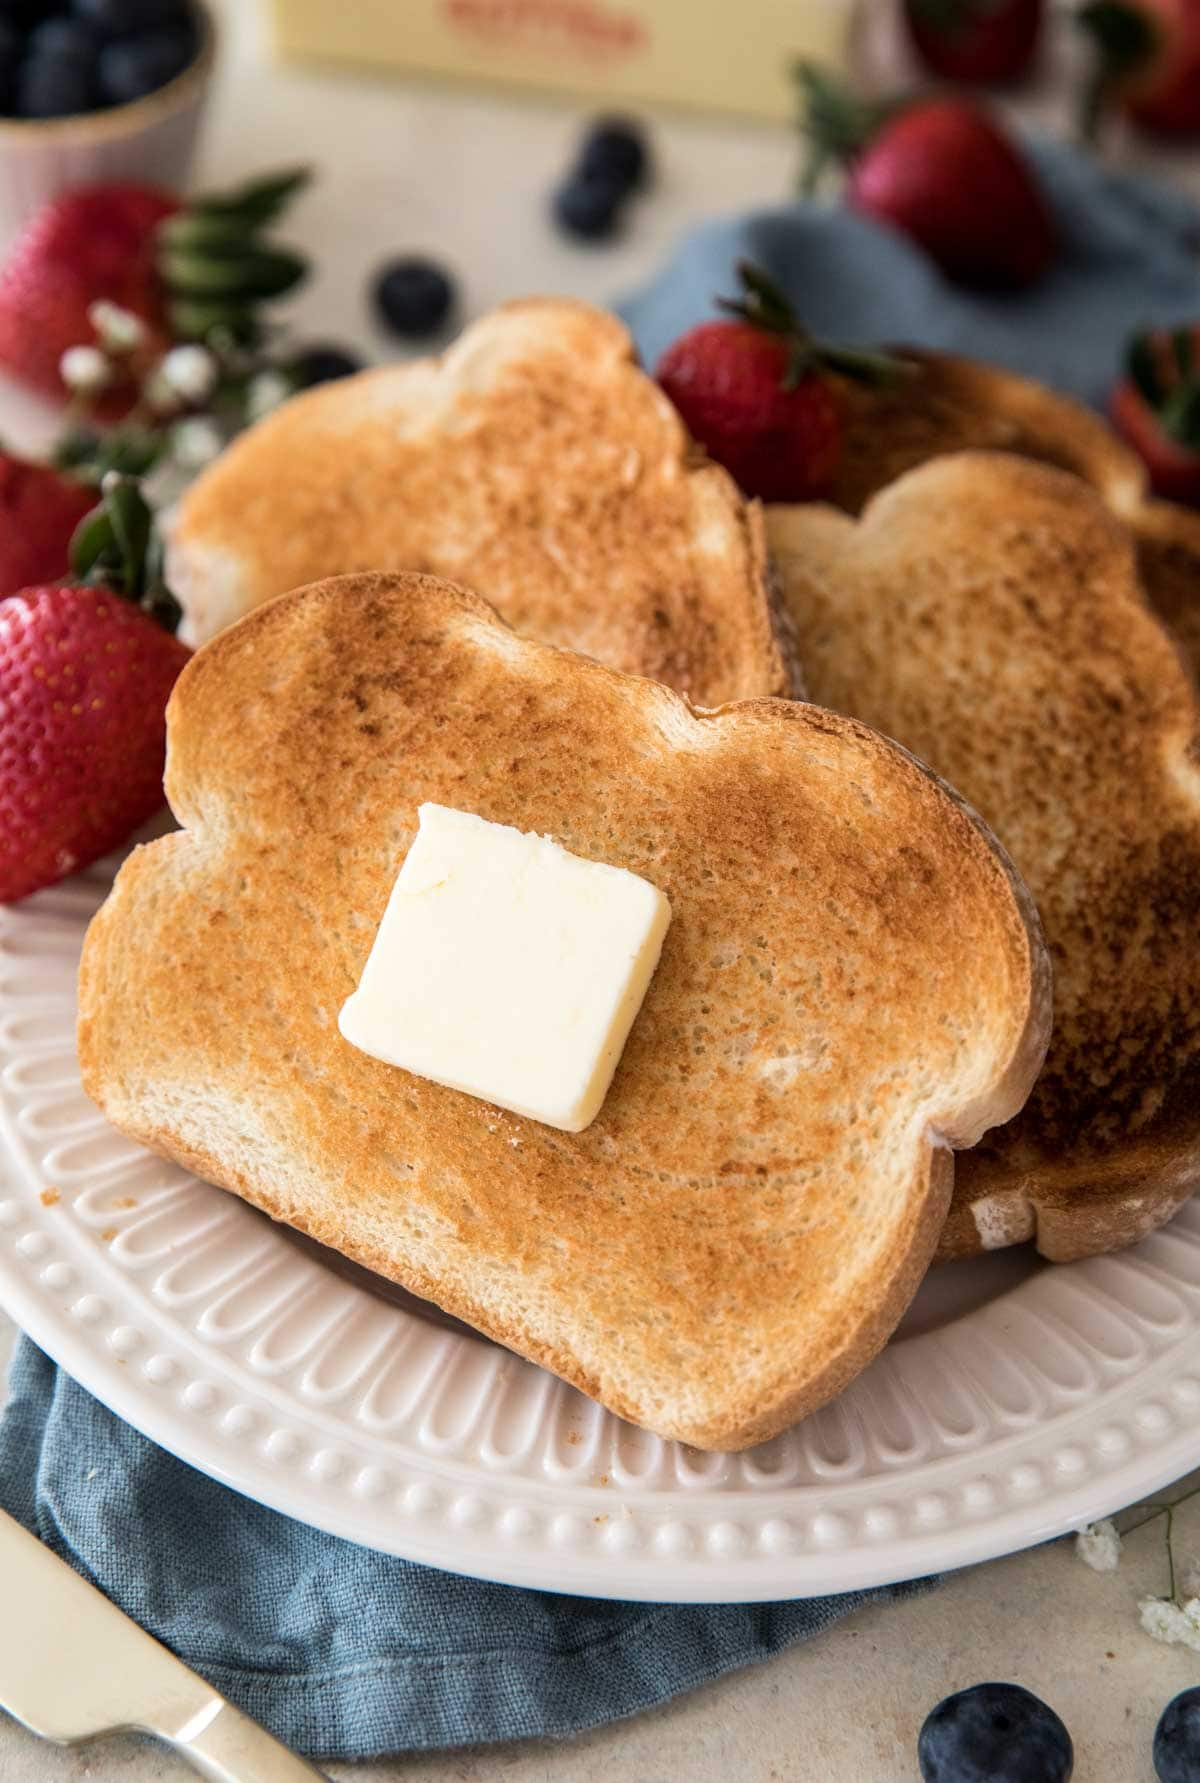 Toast with butter on a white plate surrouned by strawberries